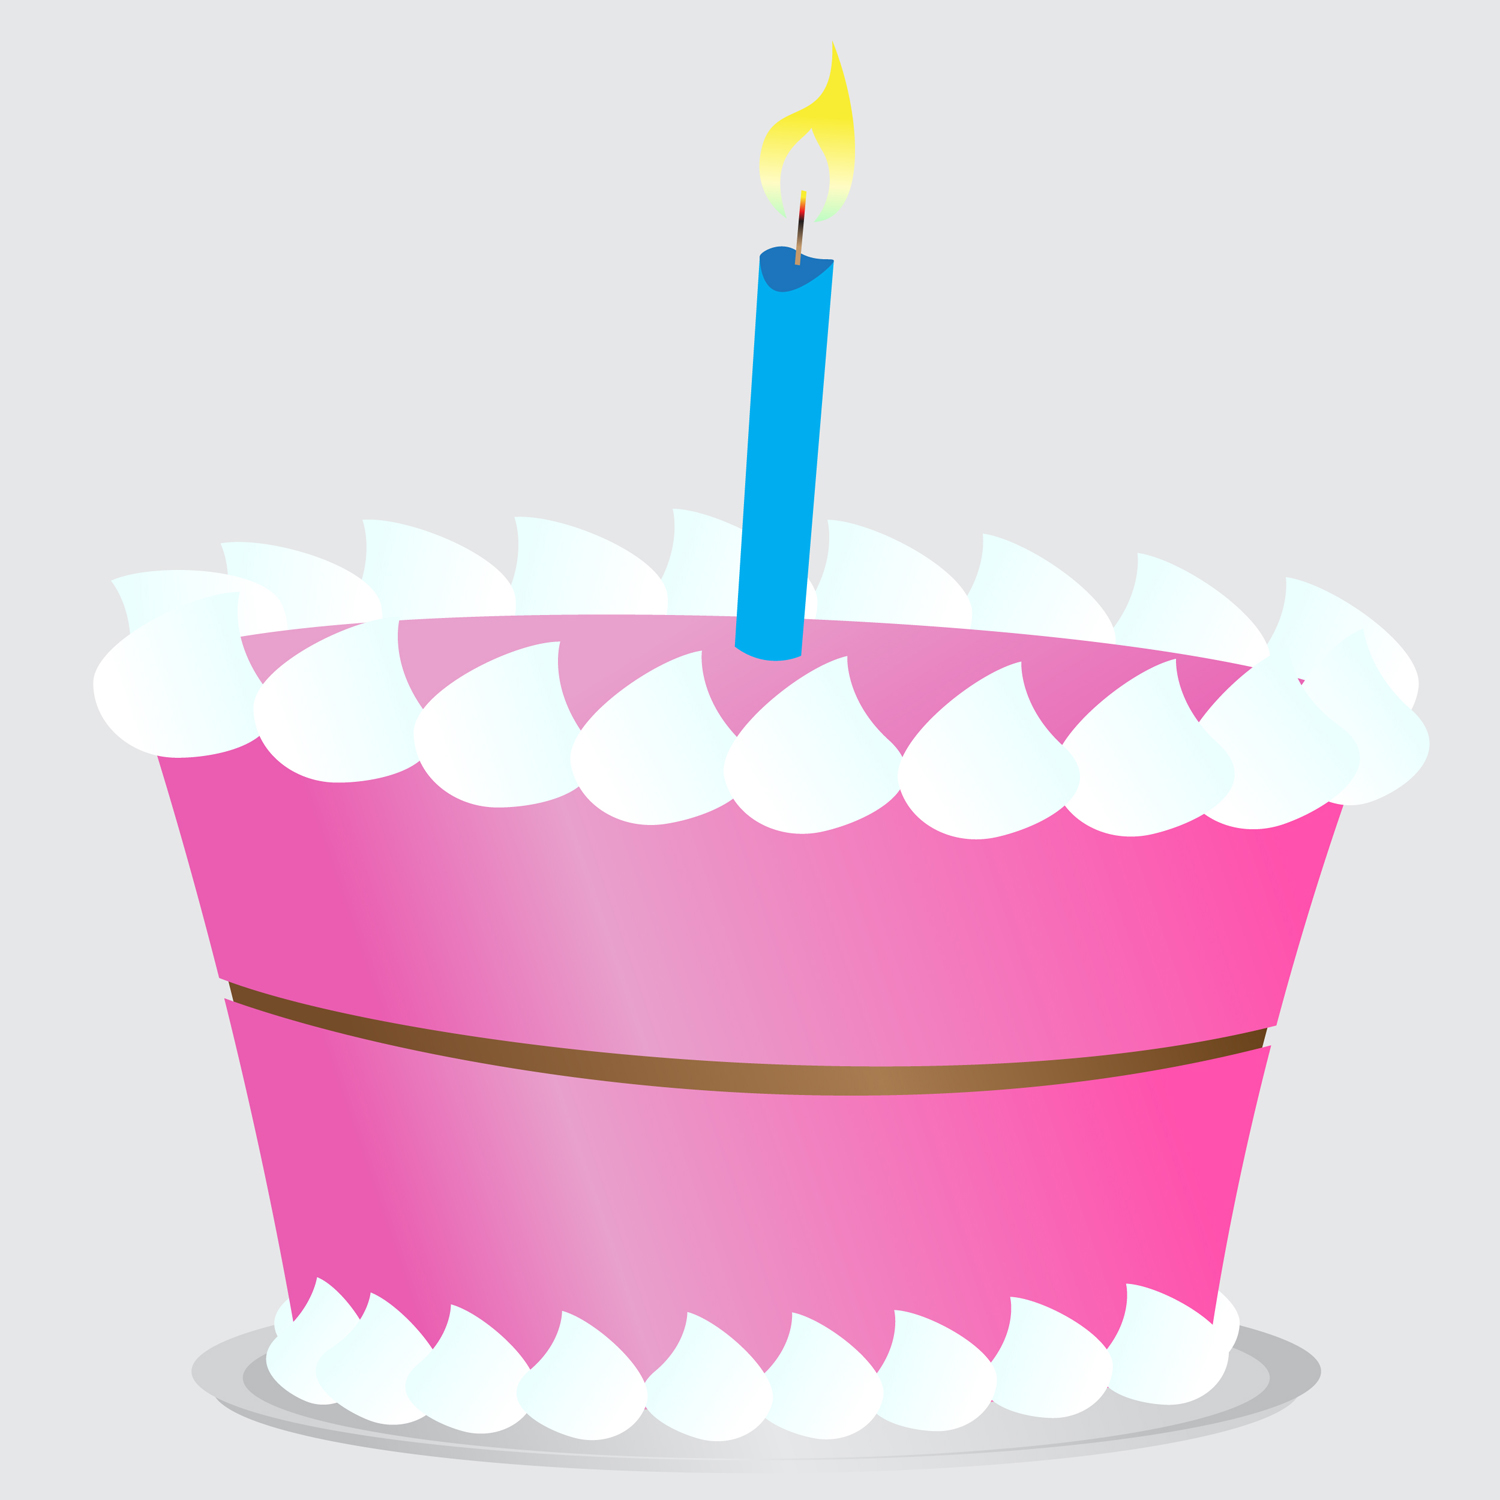 Cake Clip Art Candles : Cake Vector - Cliparts.co